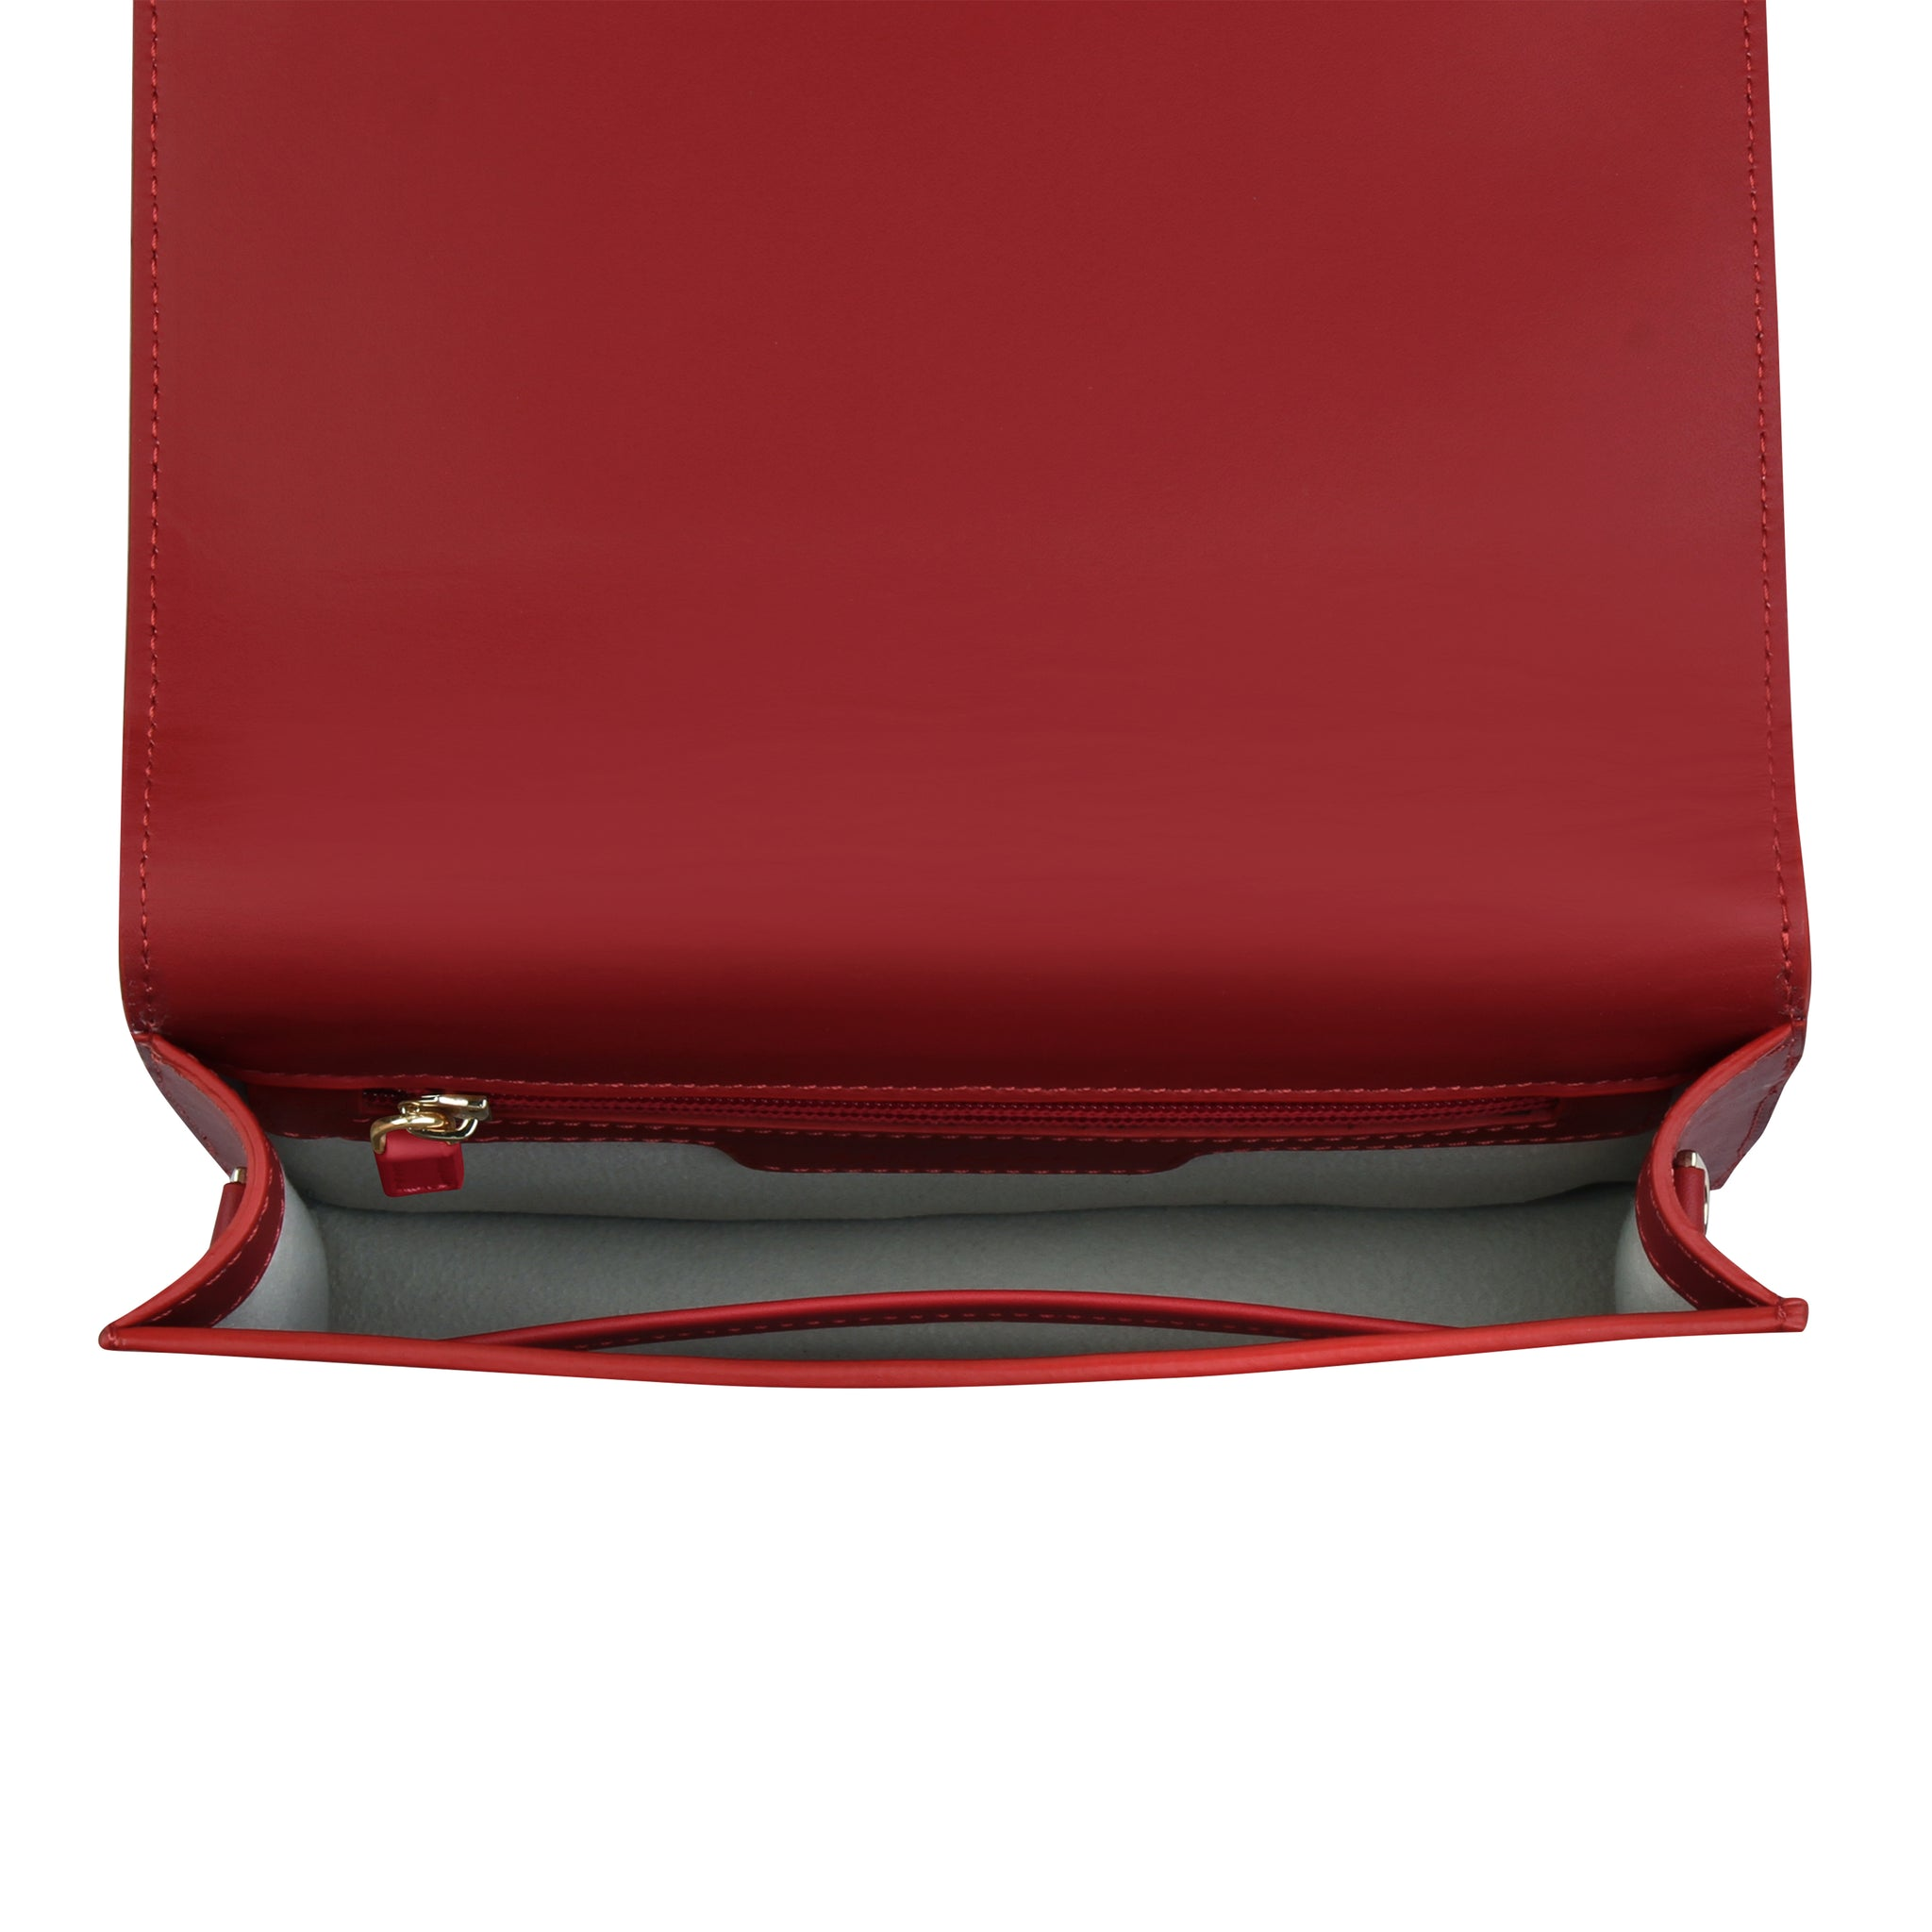 A convertible leather red clutch bag with a knot detail in front that could be used as a crossbody bag, interior image.